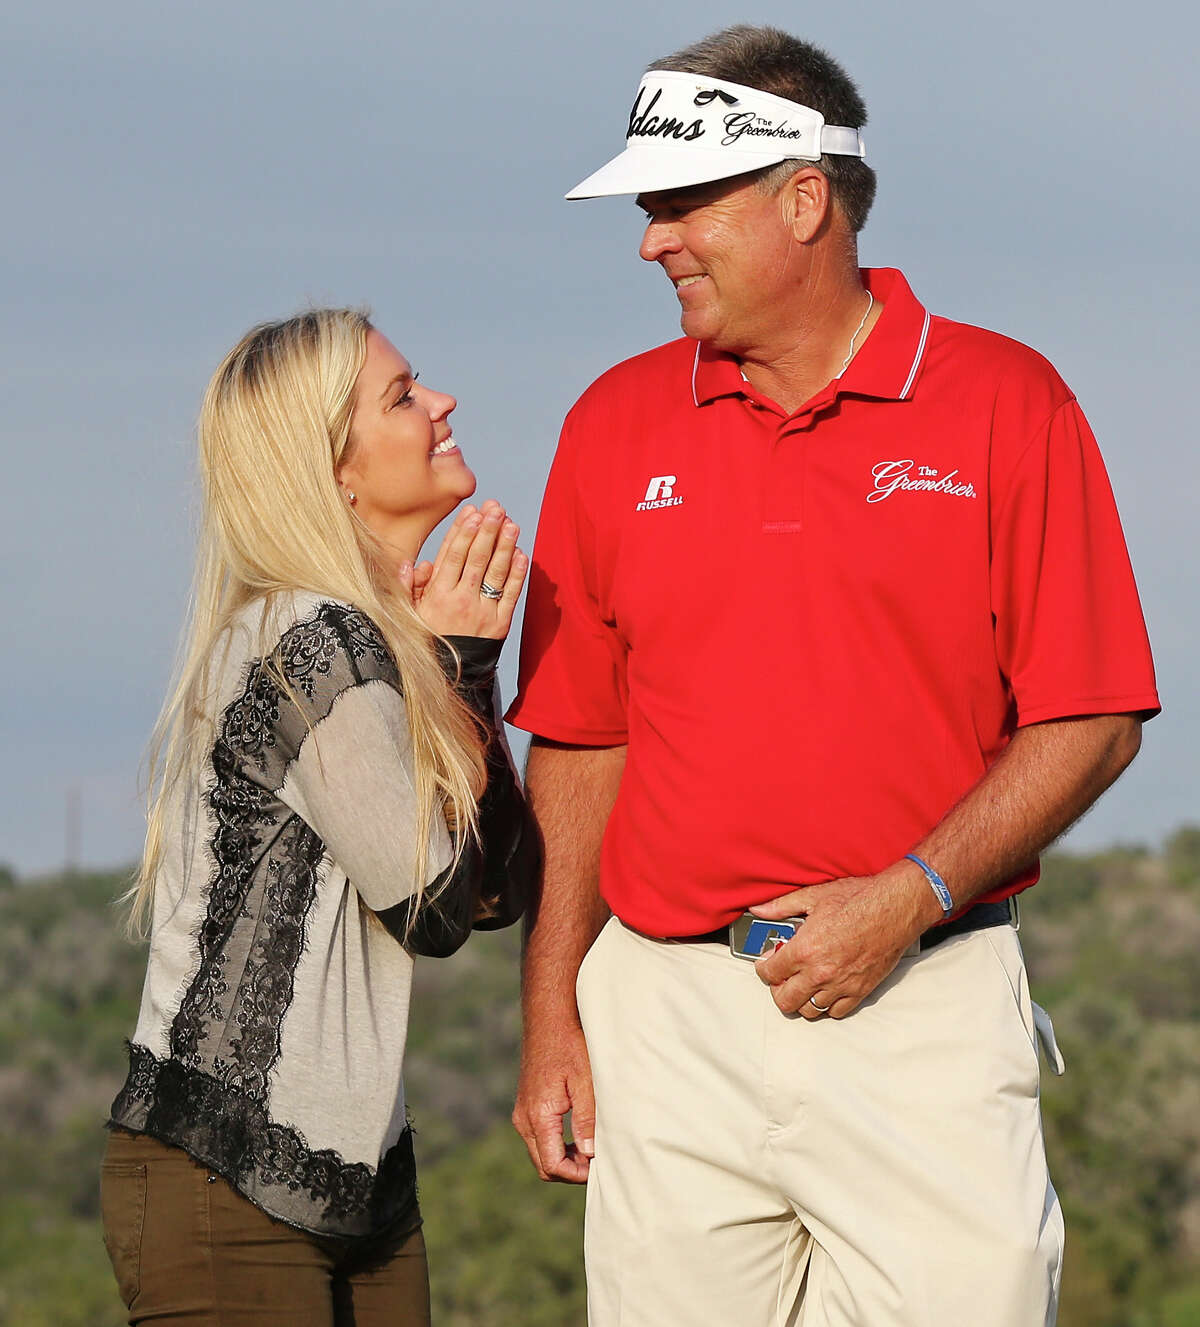 Lindsey Kennemer (left) celebrates with her father Kenny Perry after he won a one-hole sudden-death playoff against Bernhard Langer to win the 2013 AT&T Championship Sunday Oct. 27, 2013 on the AT&T Canyons Course at TPC San Antonio.